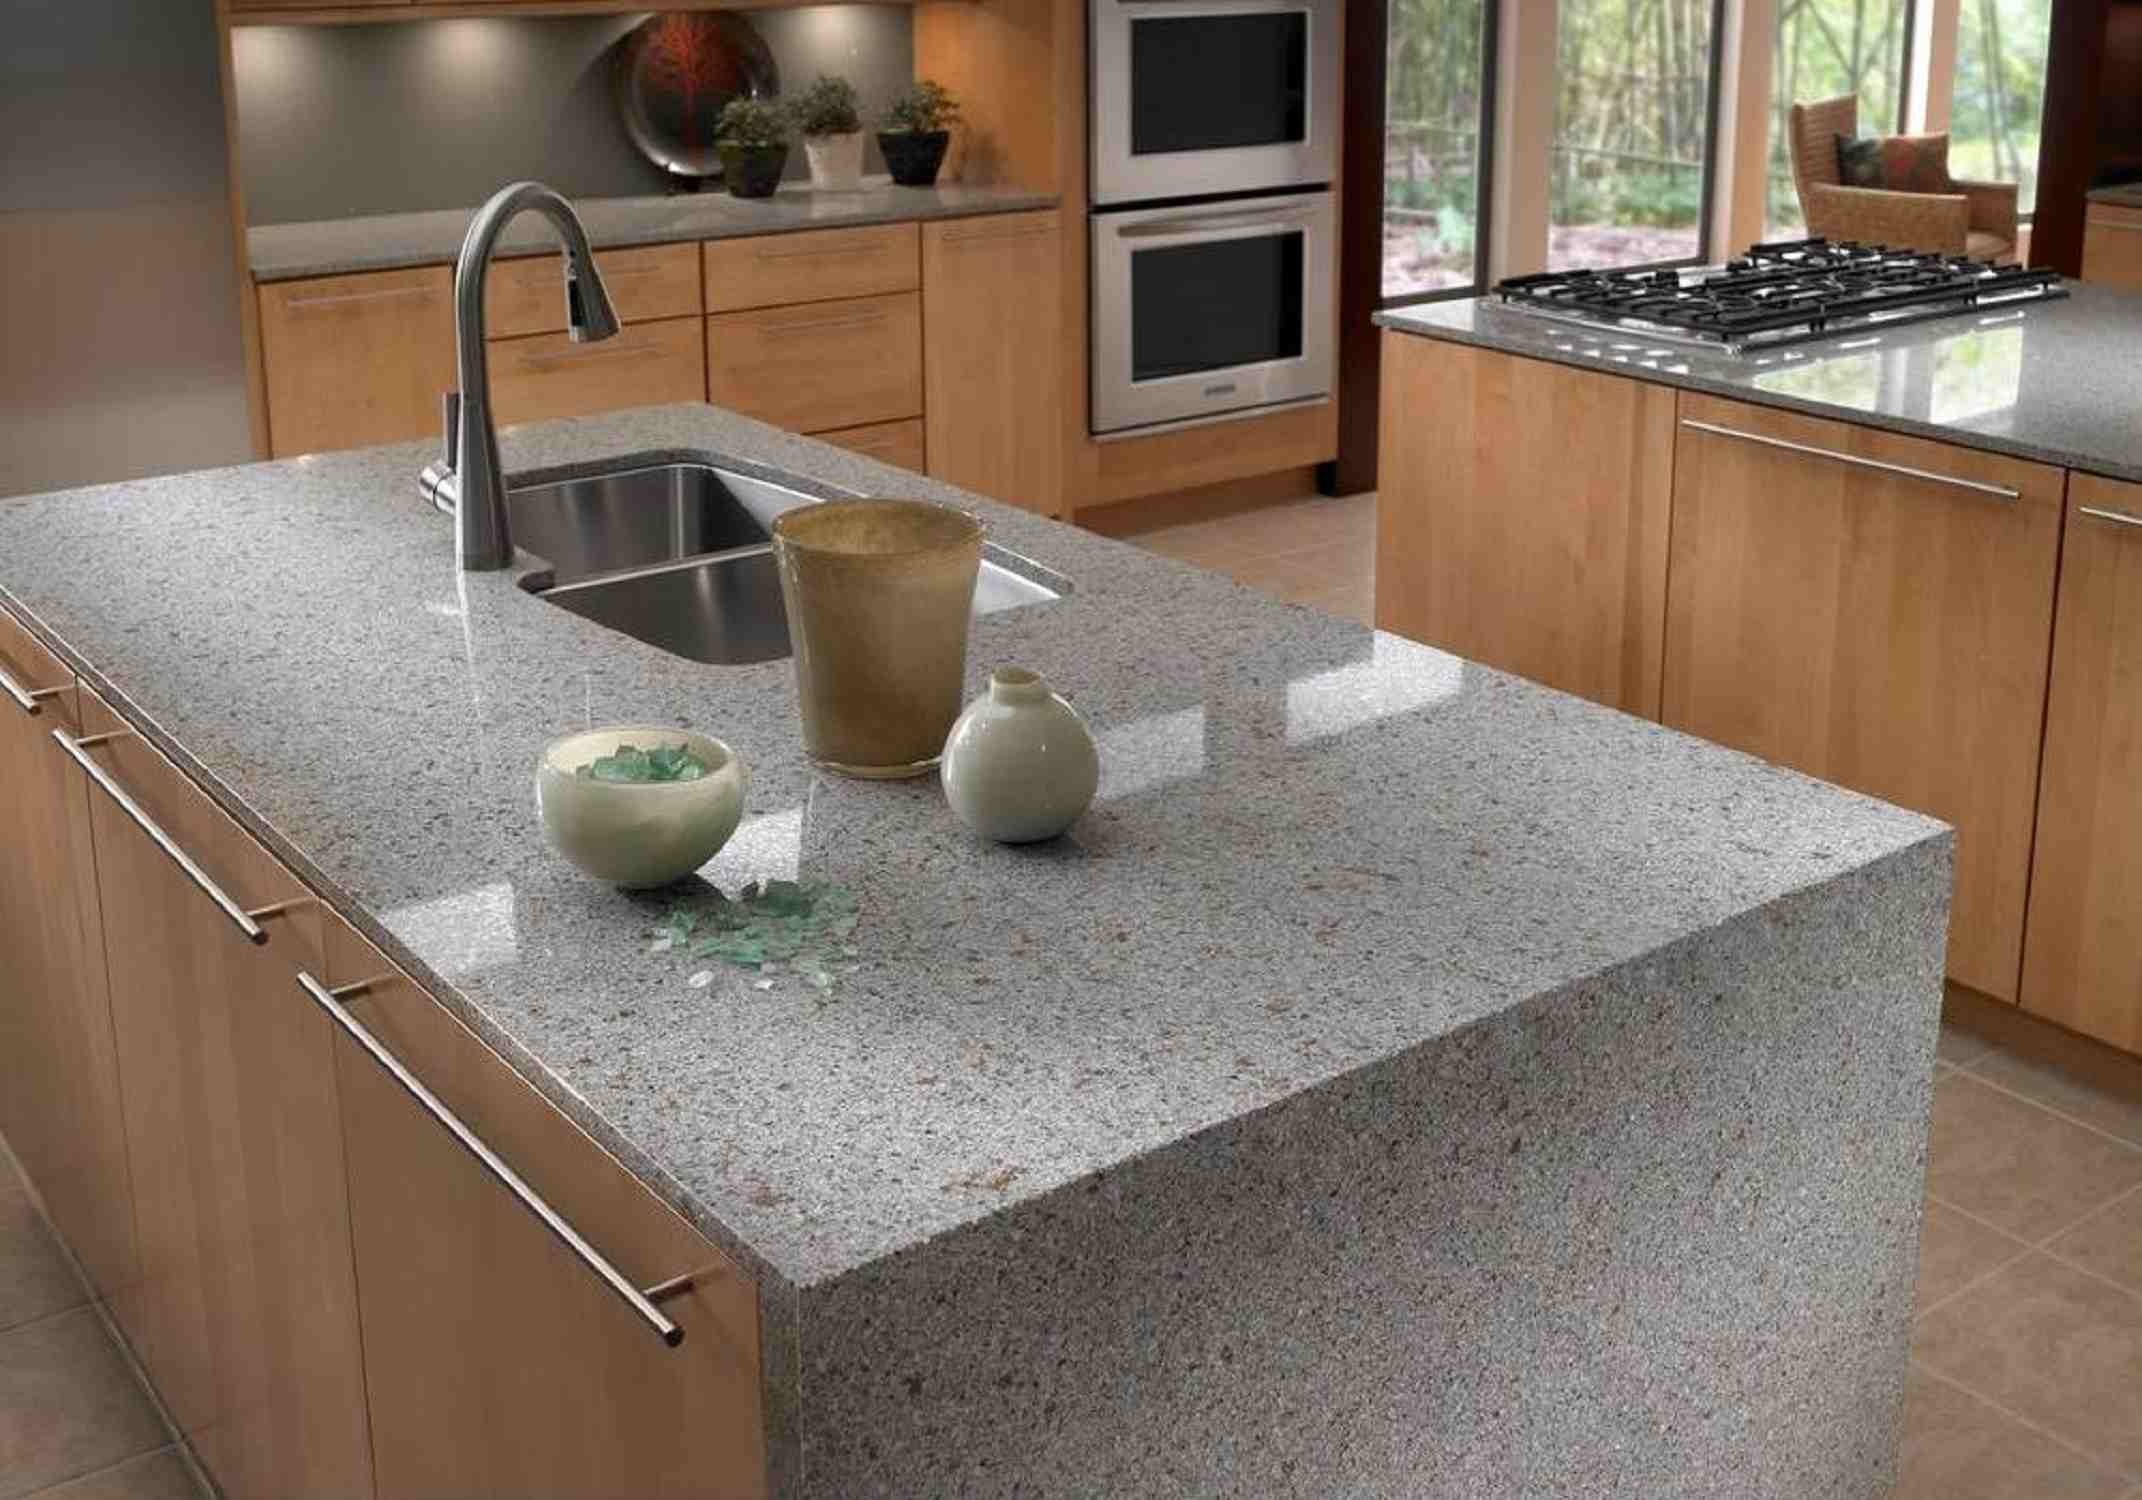 How To Clean Stone Countertops Mycoffeepot Org